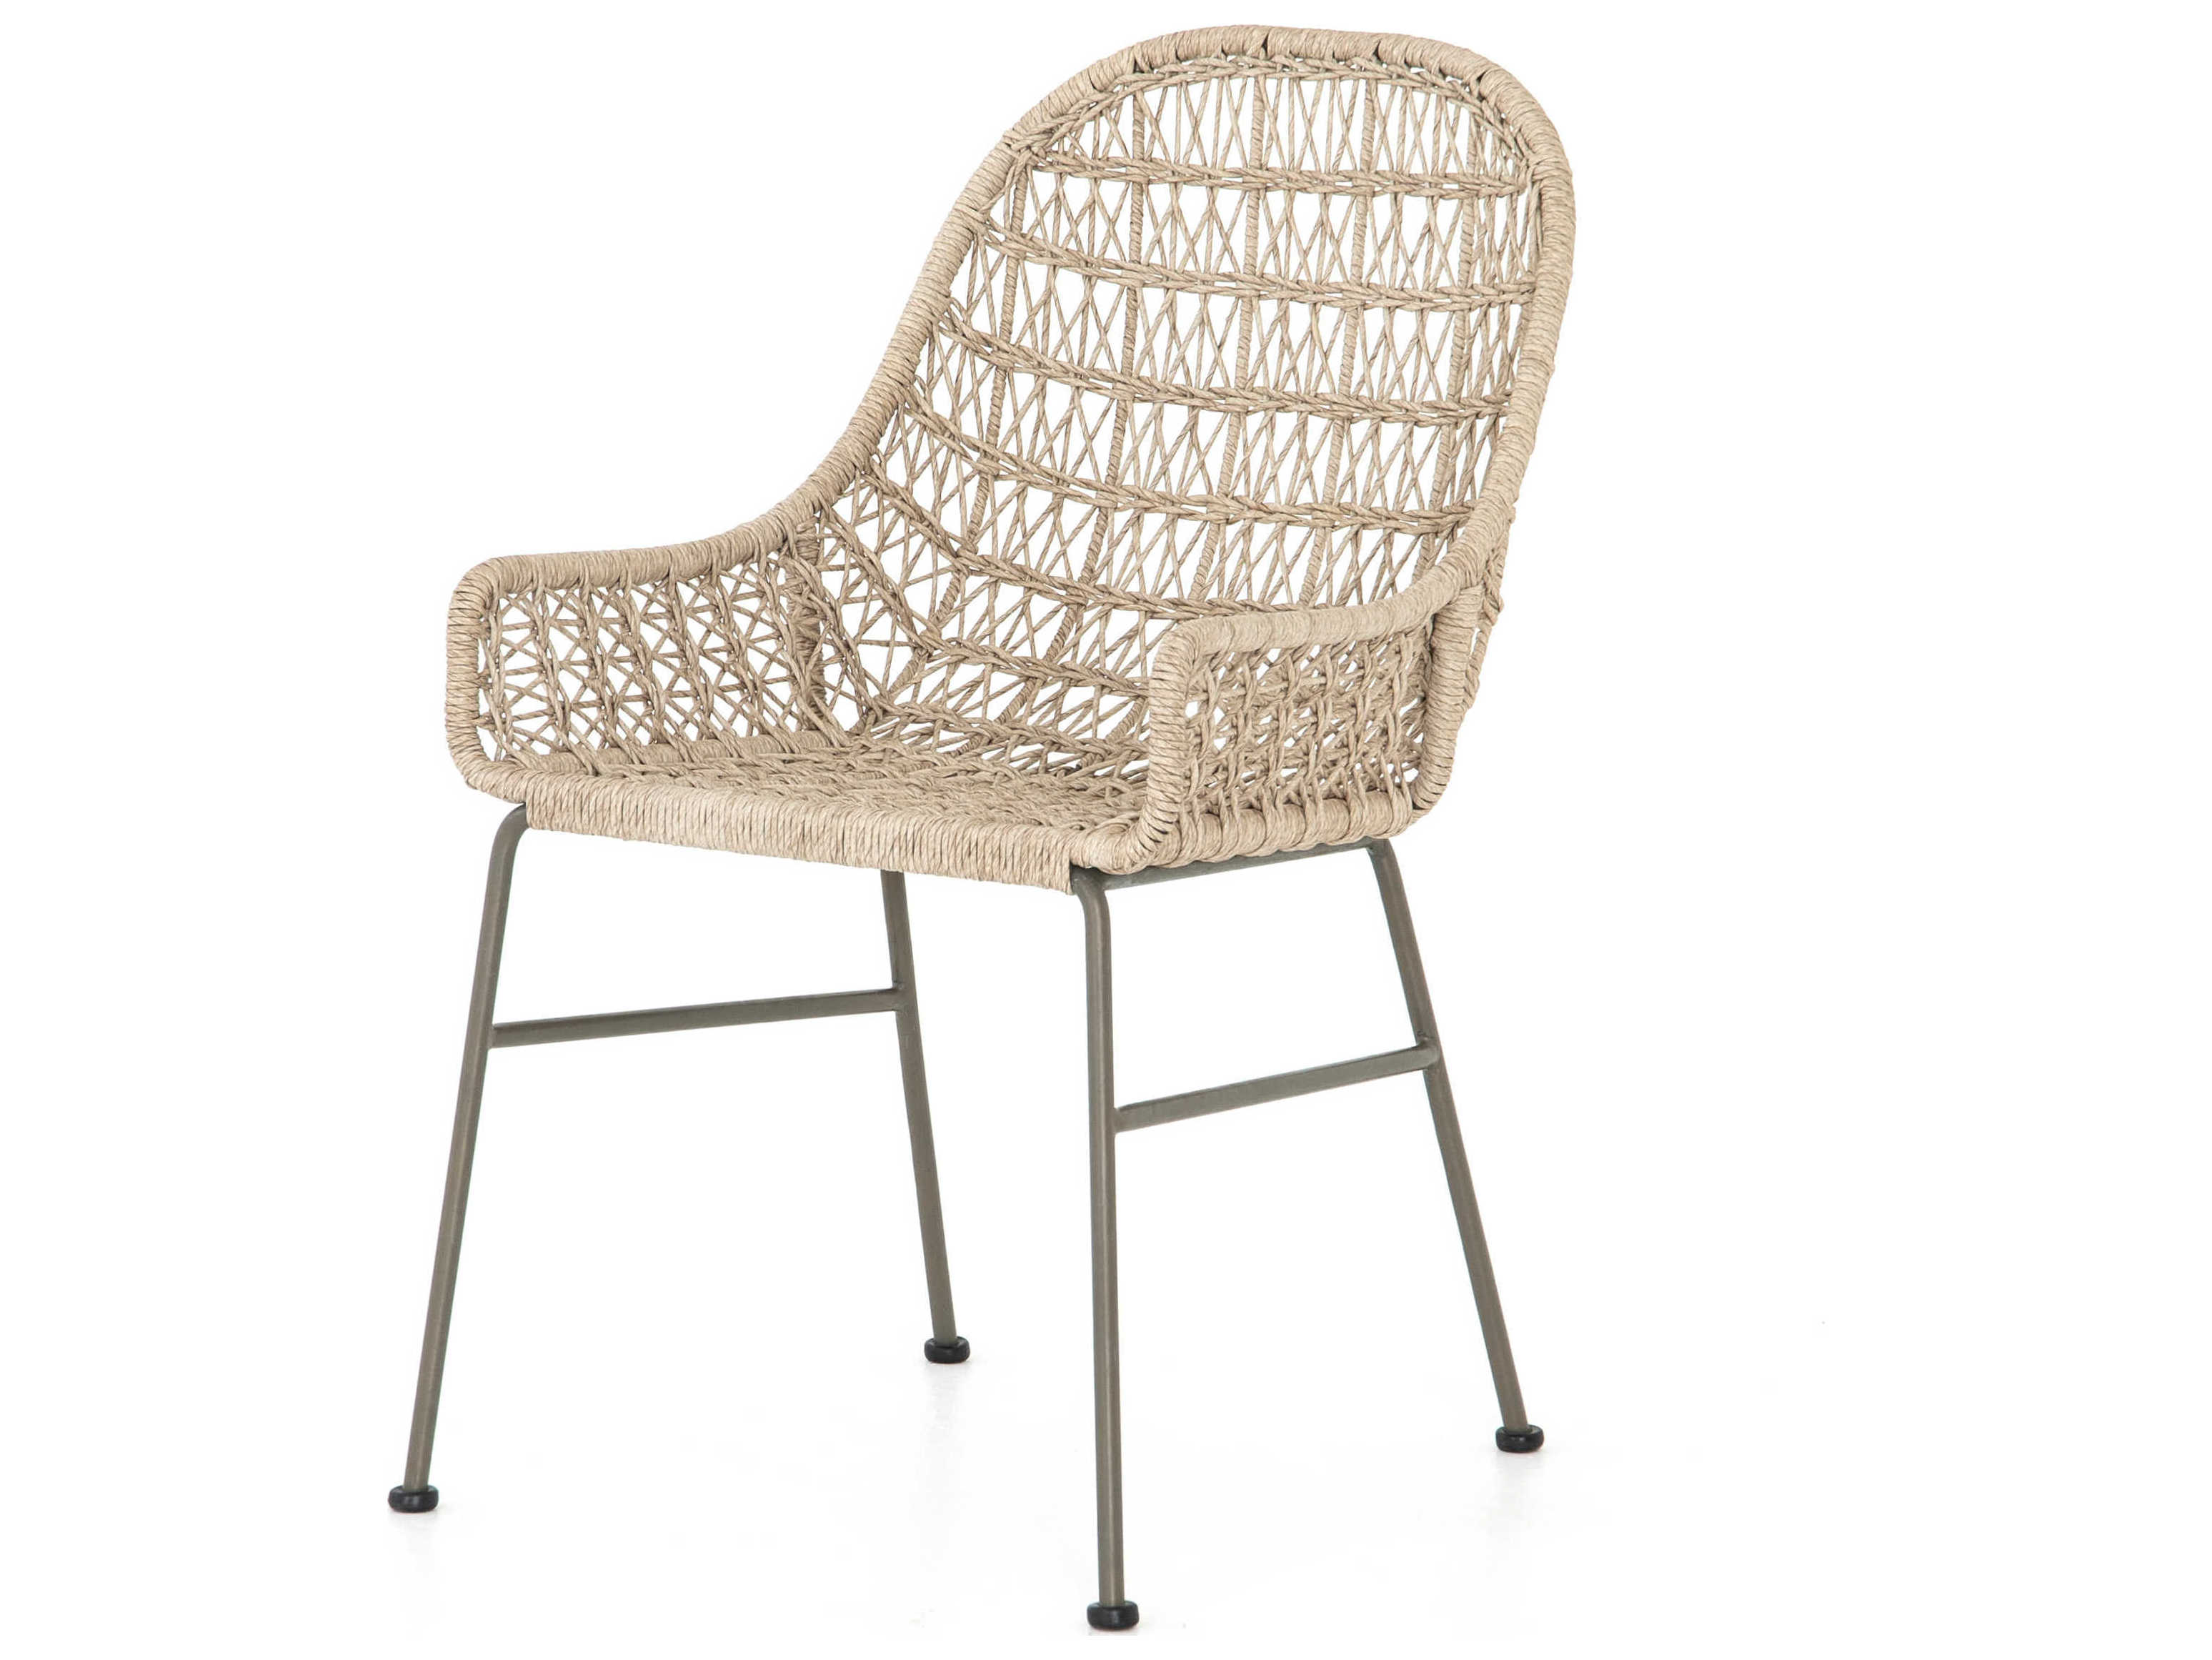 Four Hands Outdoor Grass Roots Vintage White Grey Bronze Wrought Iron Wicker Dining Chair Fhojlan131a